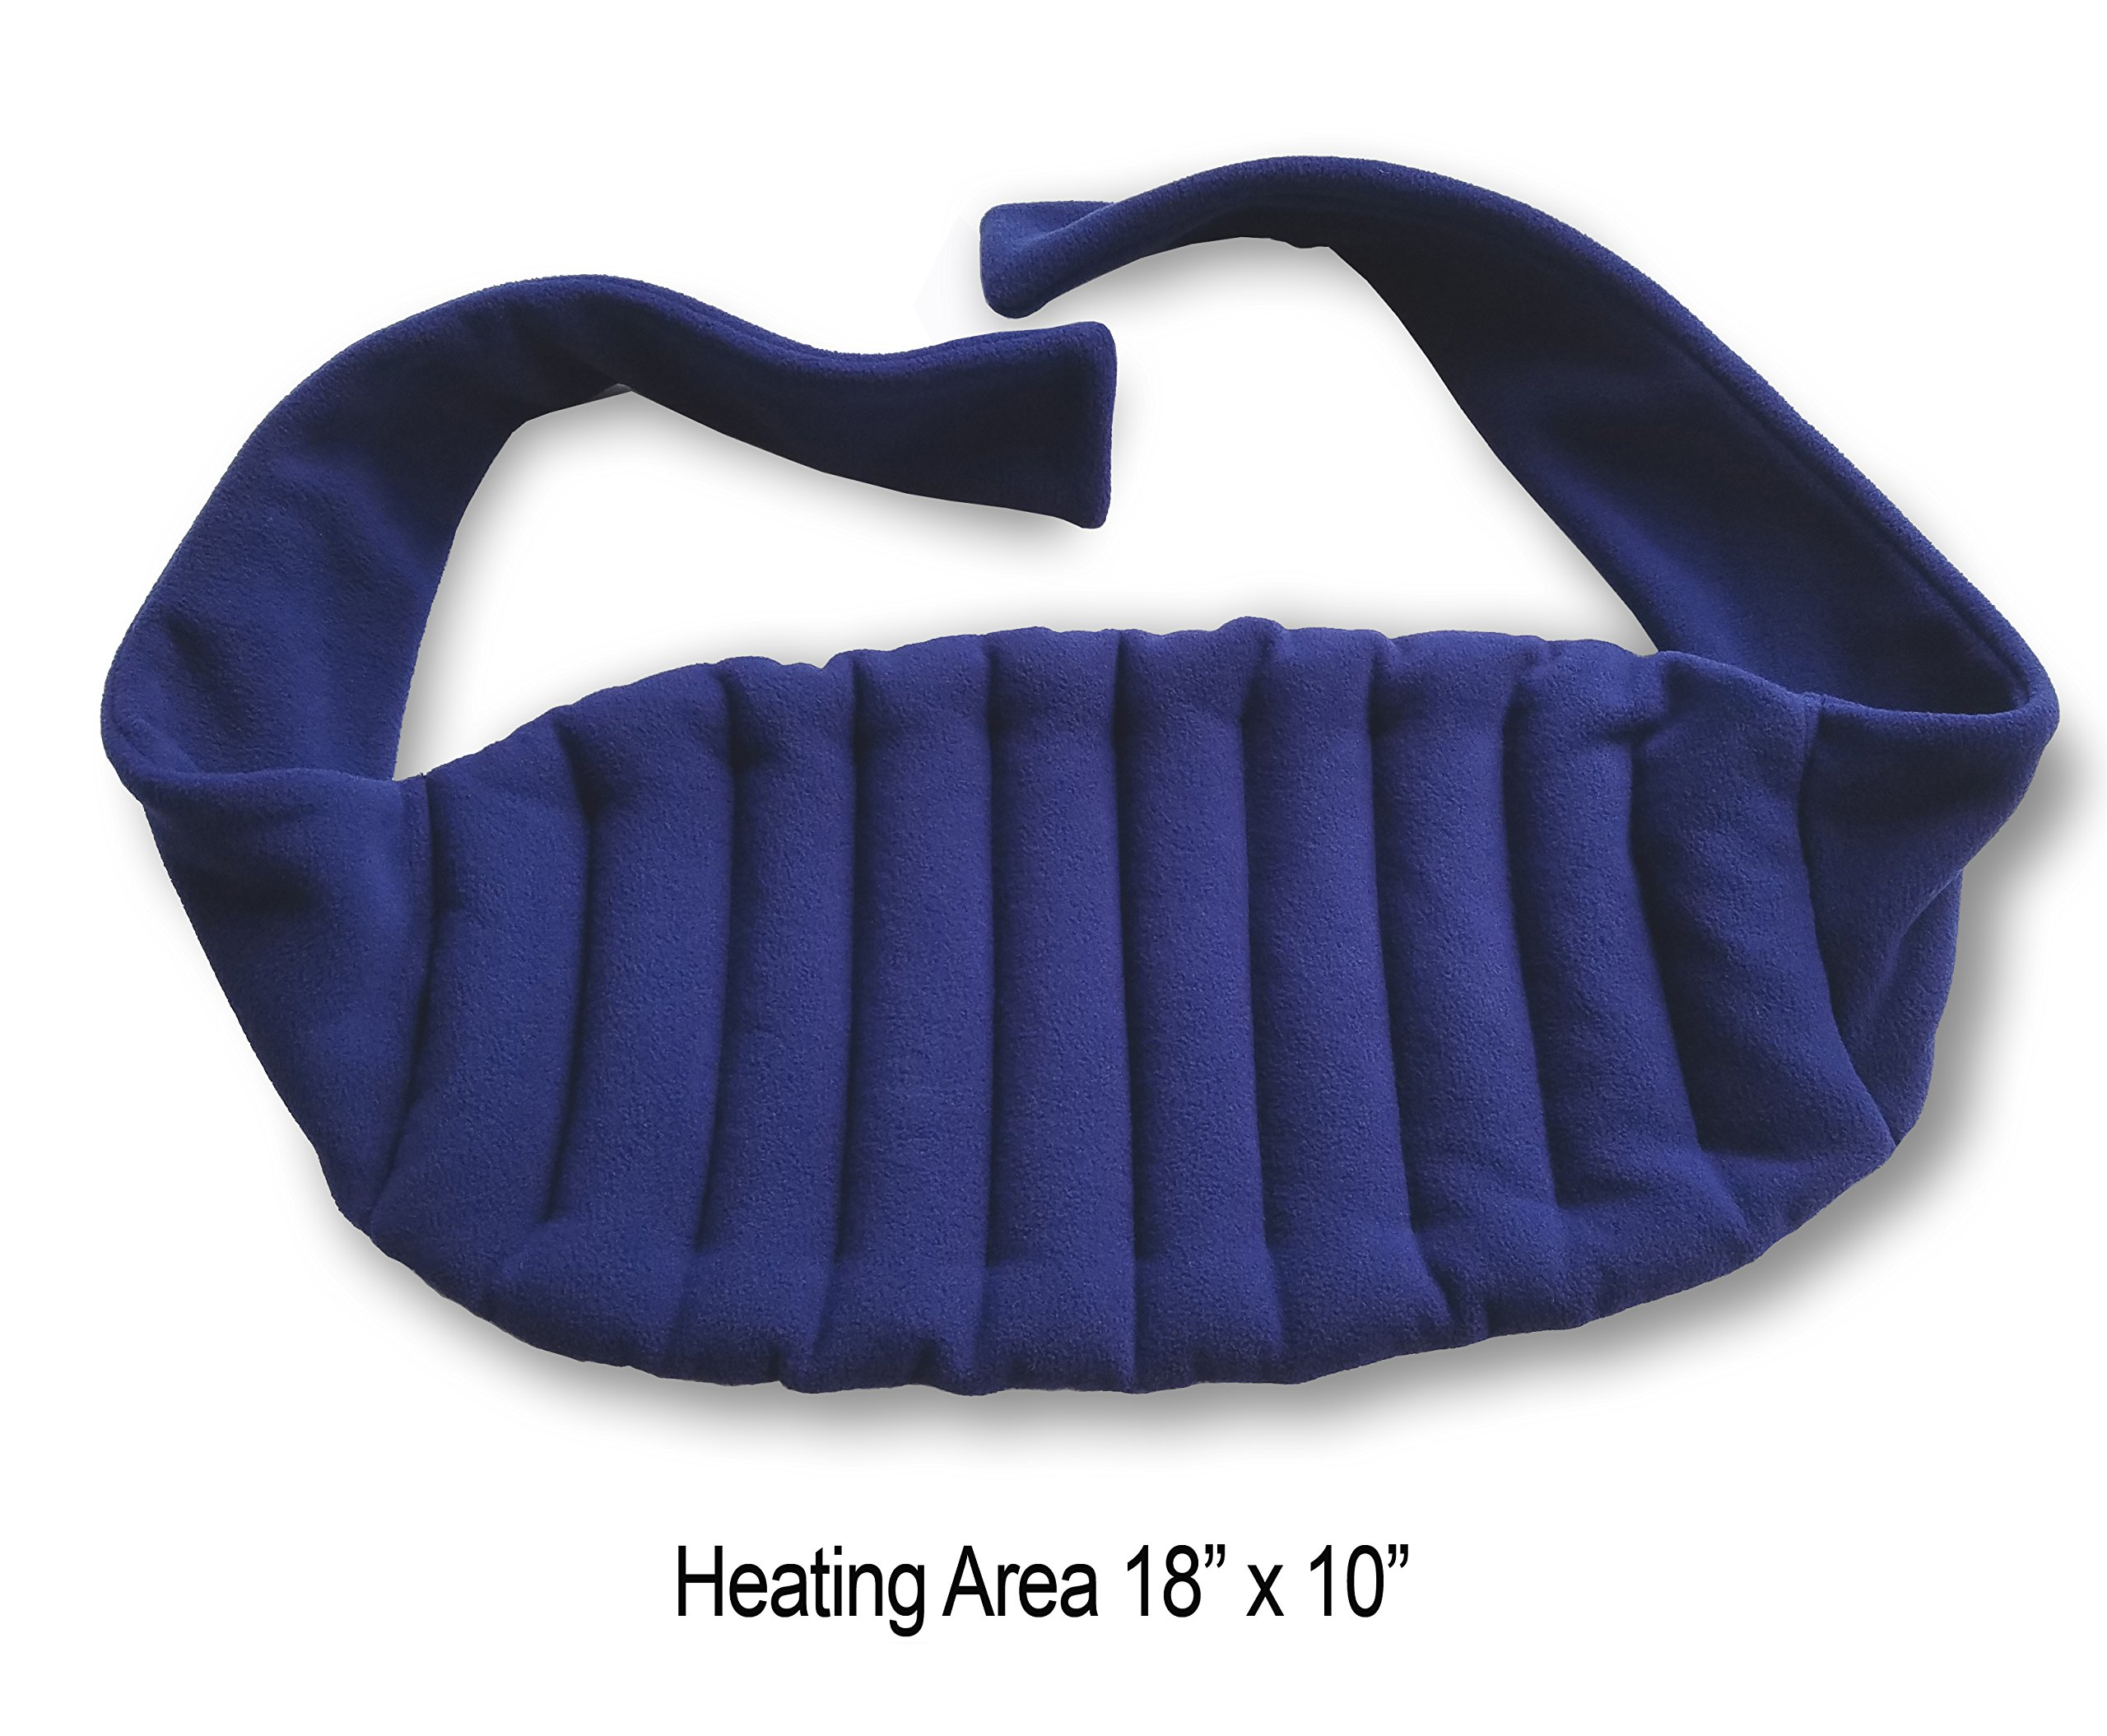 Sunny Bay Lower Back And Shoulder Joint Heat Back Pack with Extra Long Straps, 10''x18'' Heating Area, Heating Pads Microwaveable, Heat Pad Moist, Reusable, Portable, Navy Blue (large) by Sunny Bay